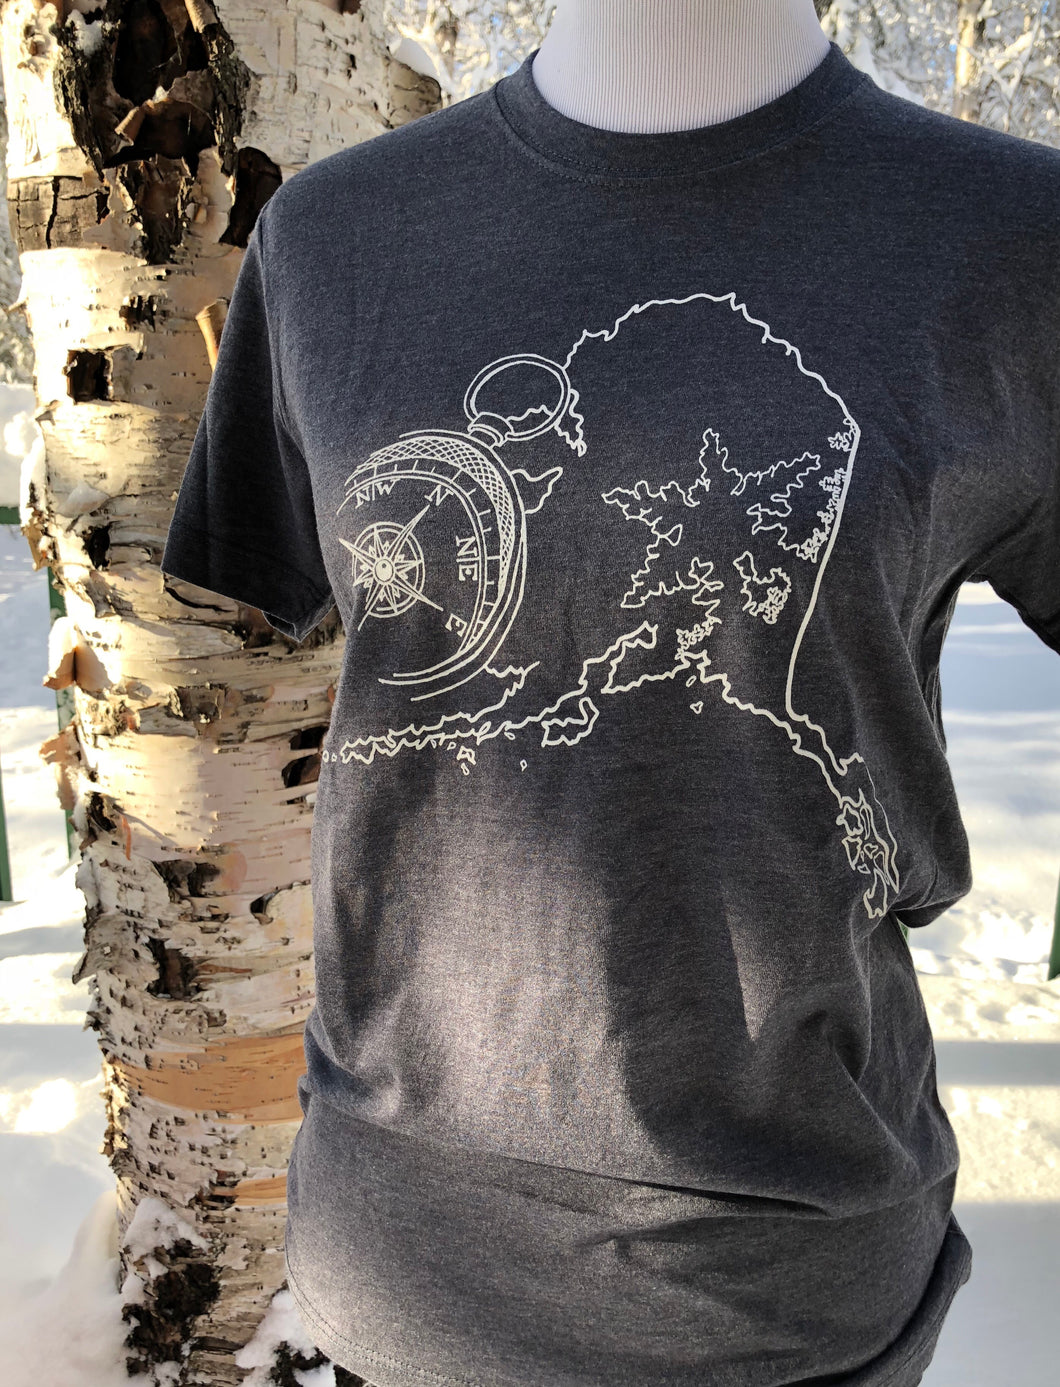 Frozen Tides T-Shirt - Blue Gray